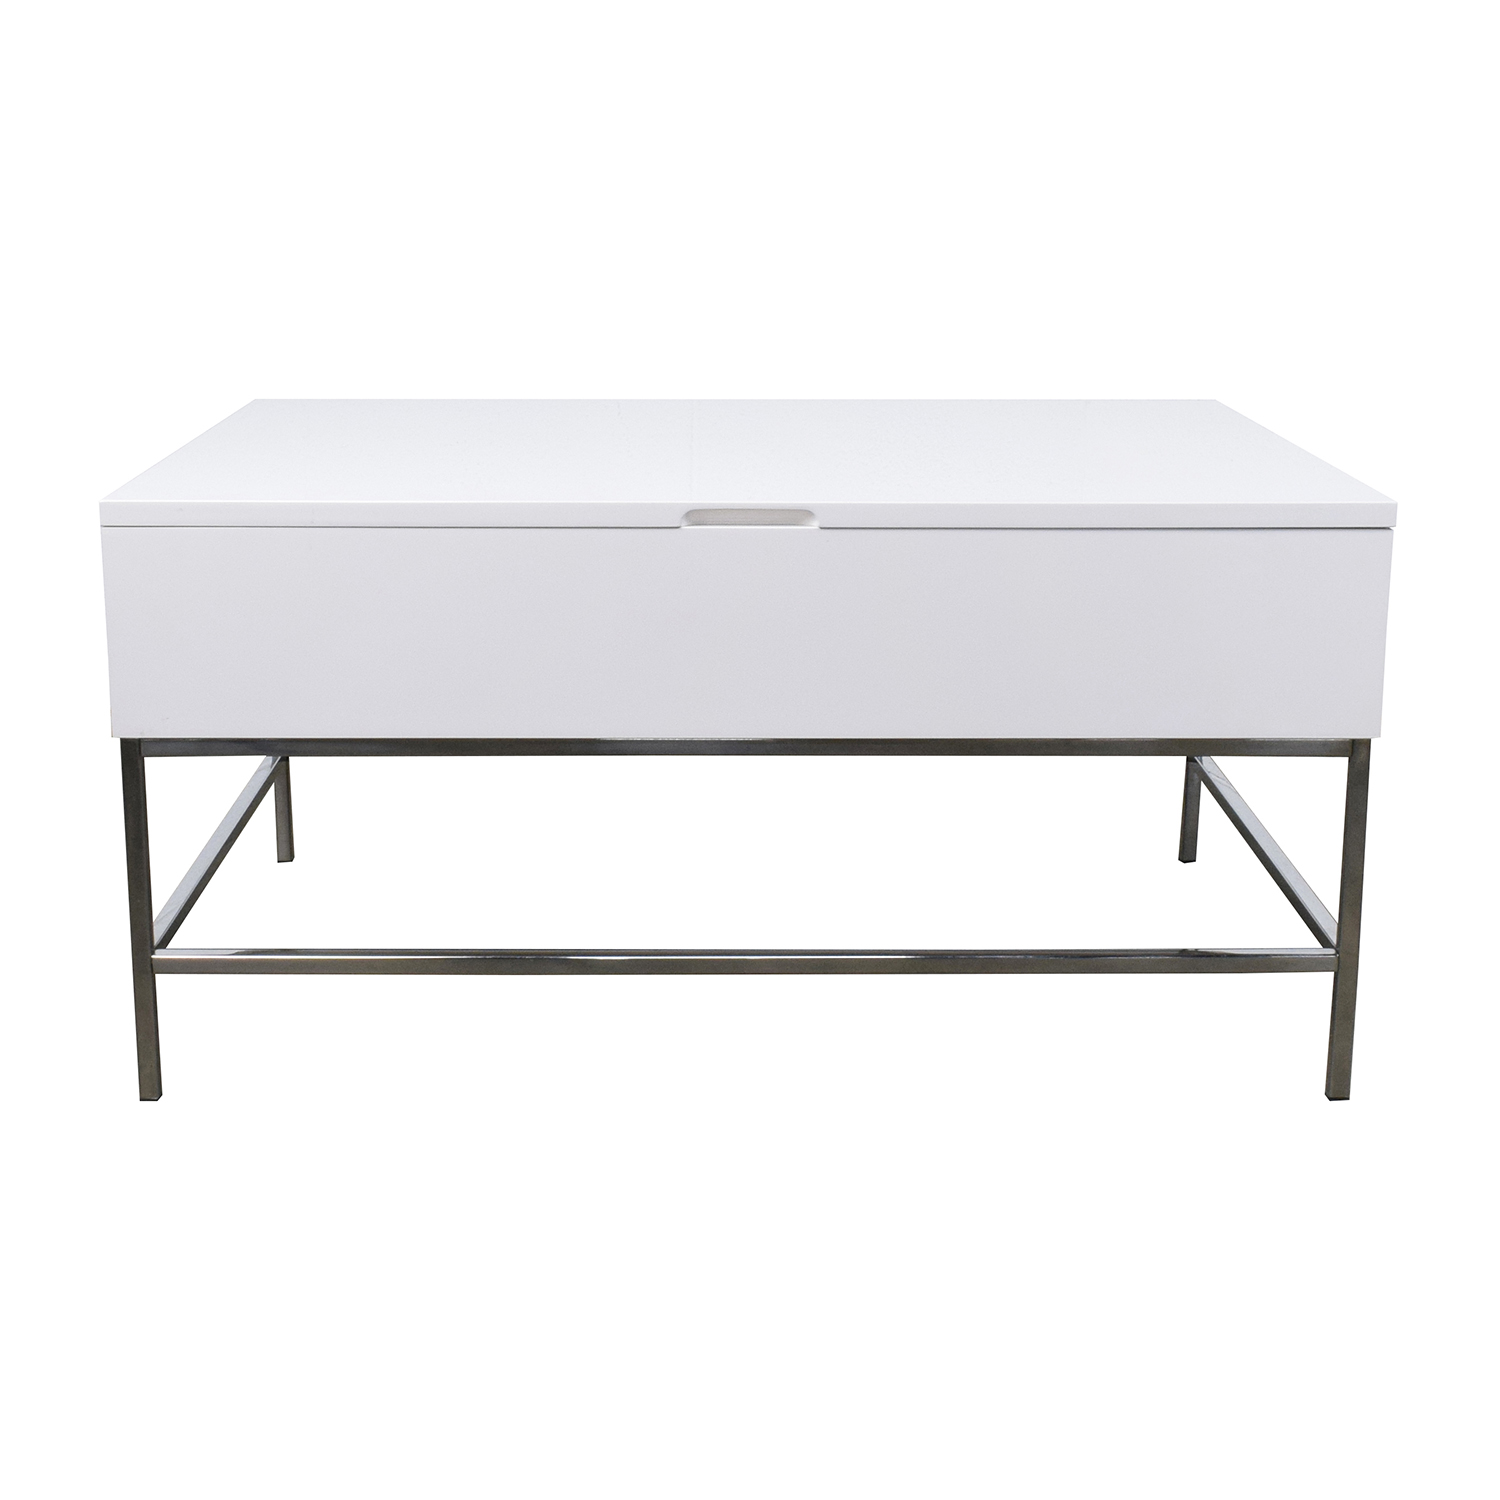 Bon West Elm Storage Table West Elm White Lacquer Wood Coffee Table Dimensions  ...